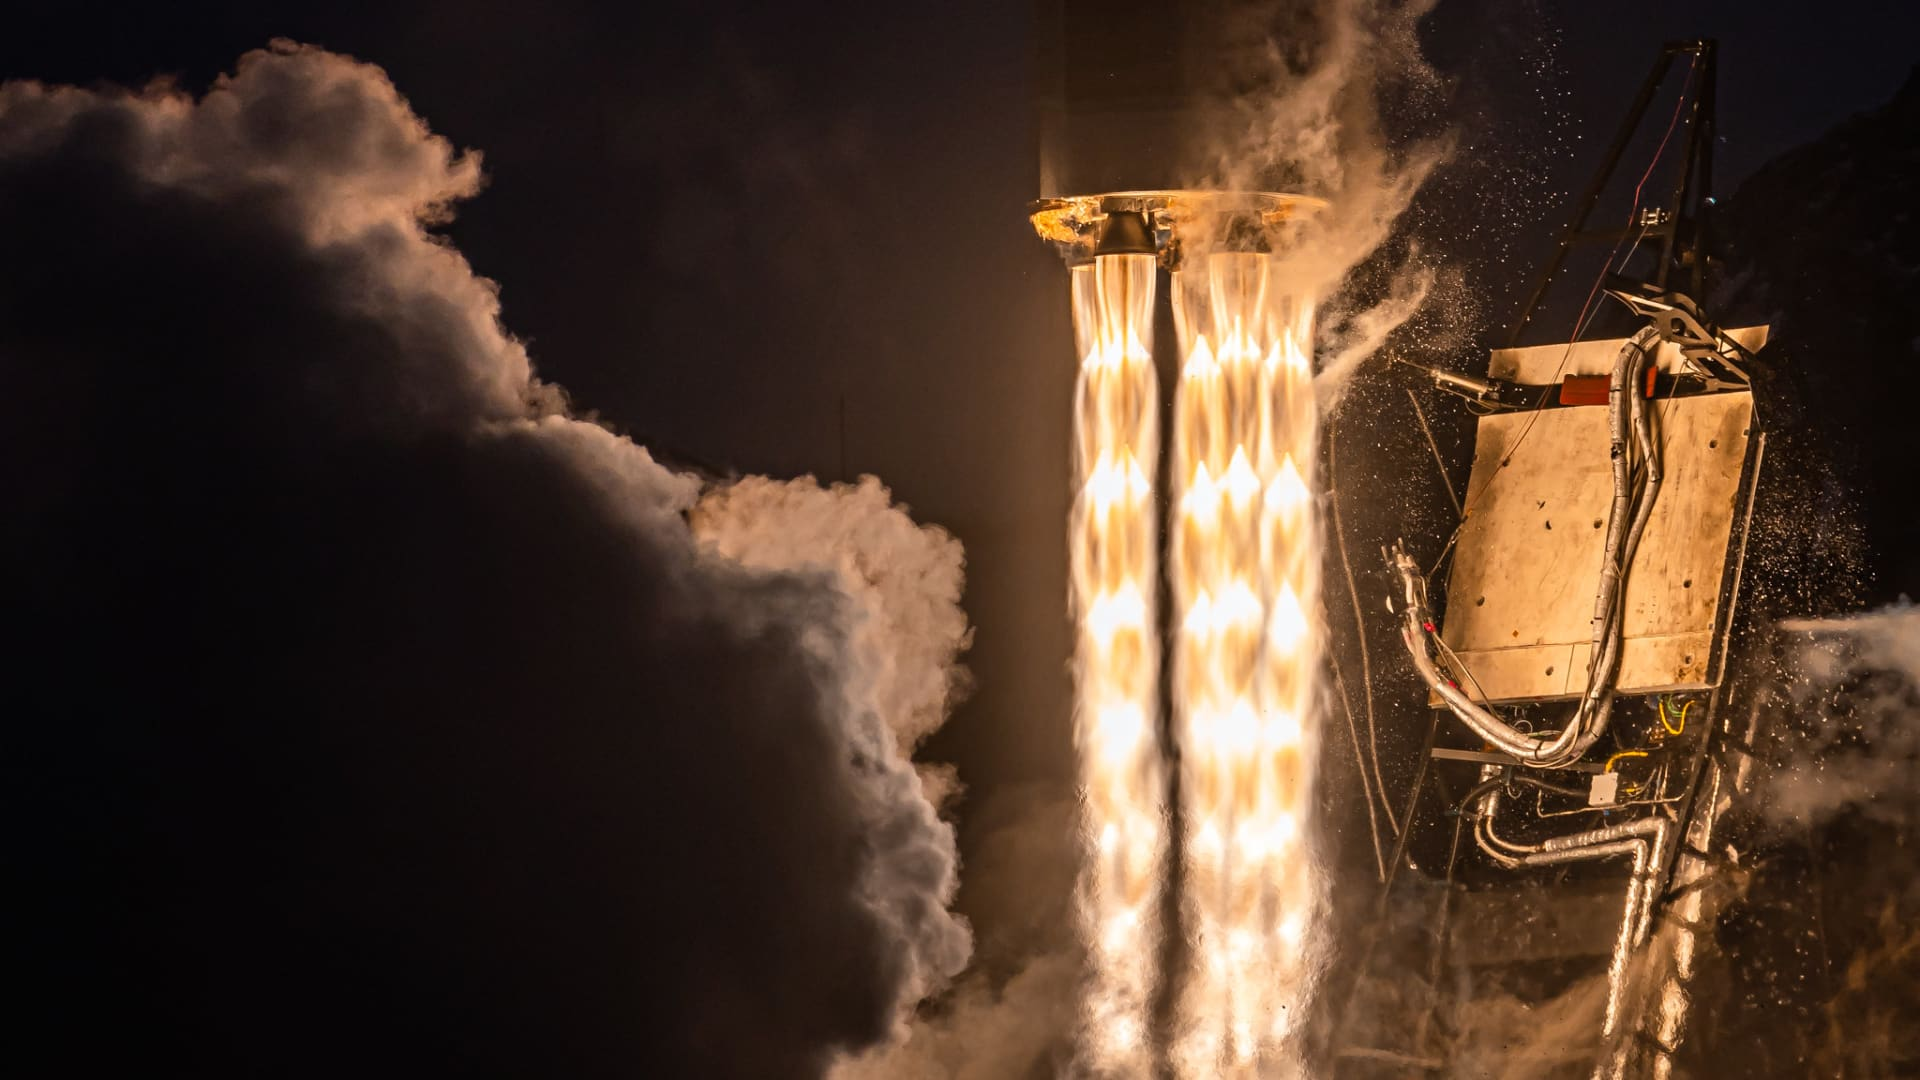 A close up view of Rocket 3.2's engines shortly after liftoff.